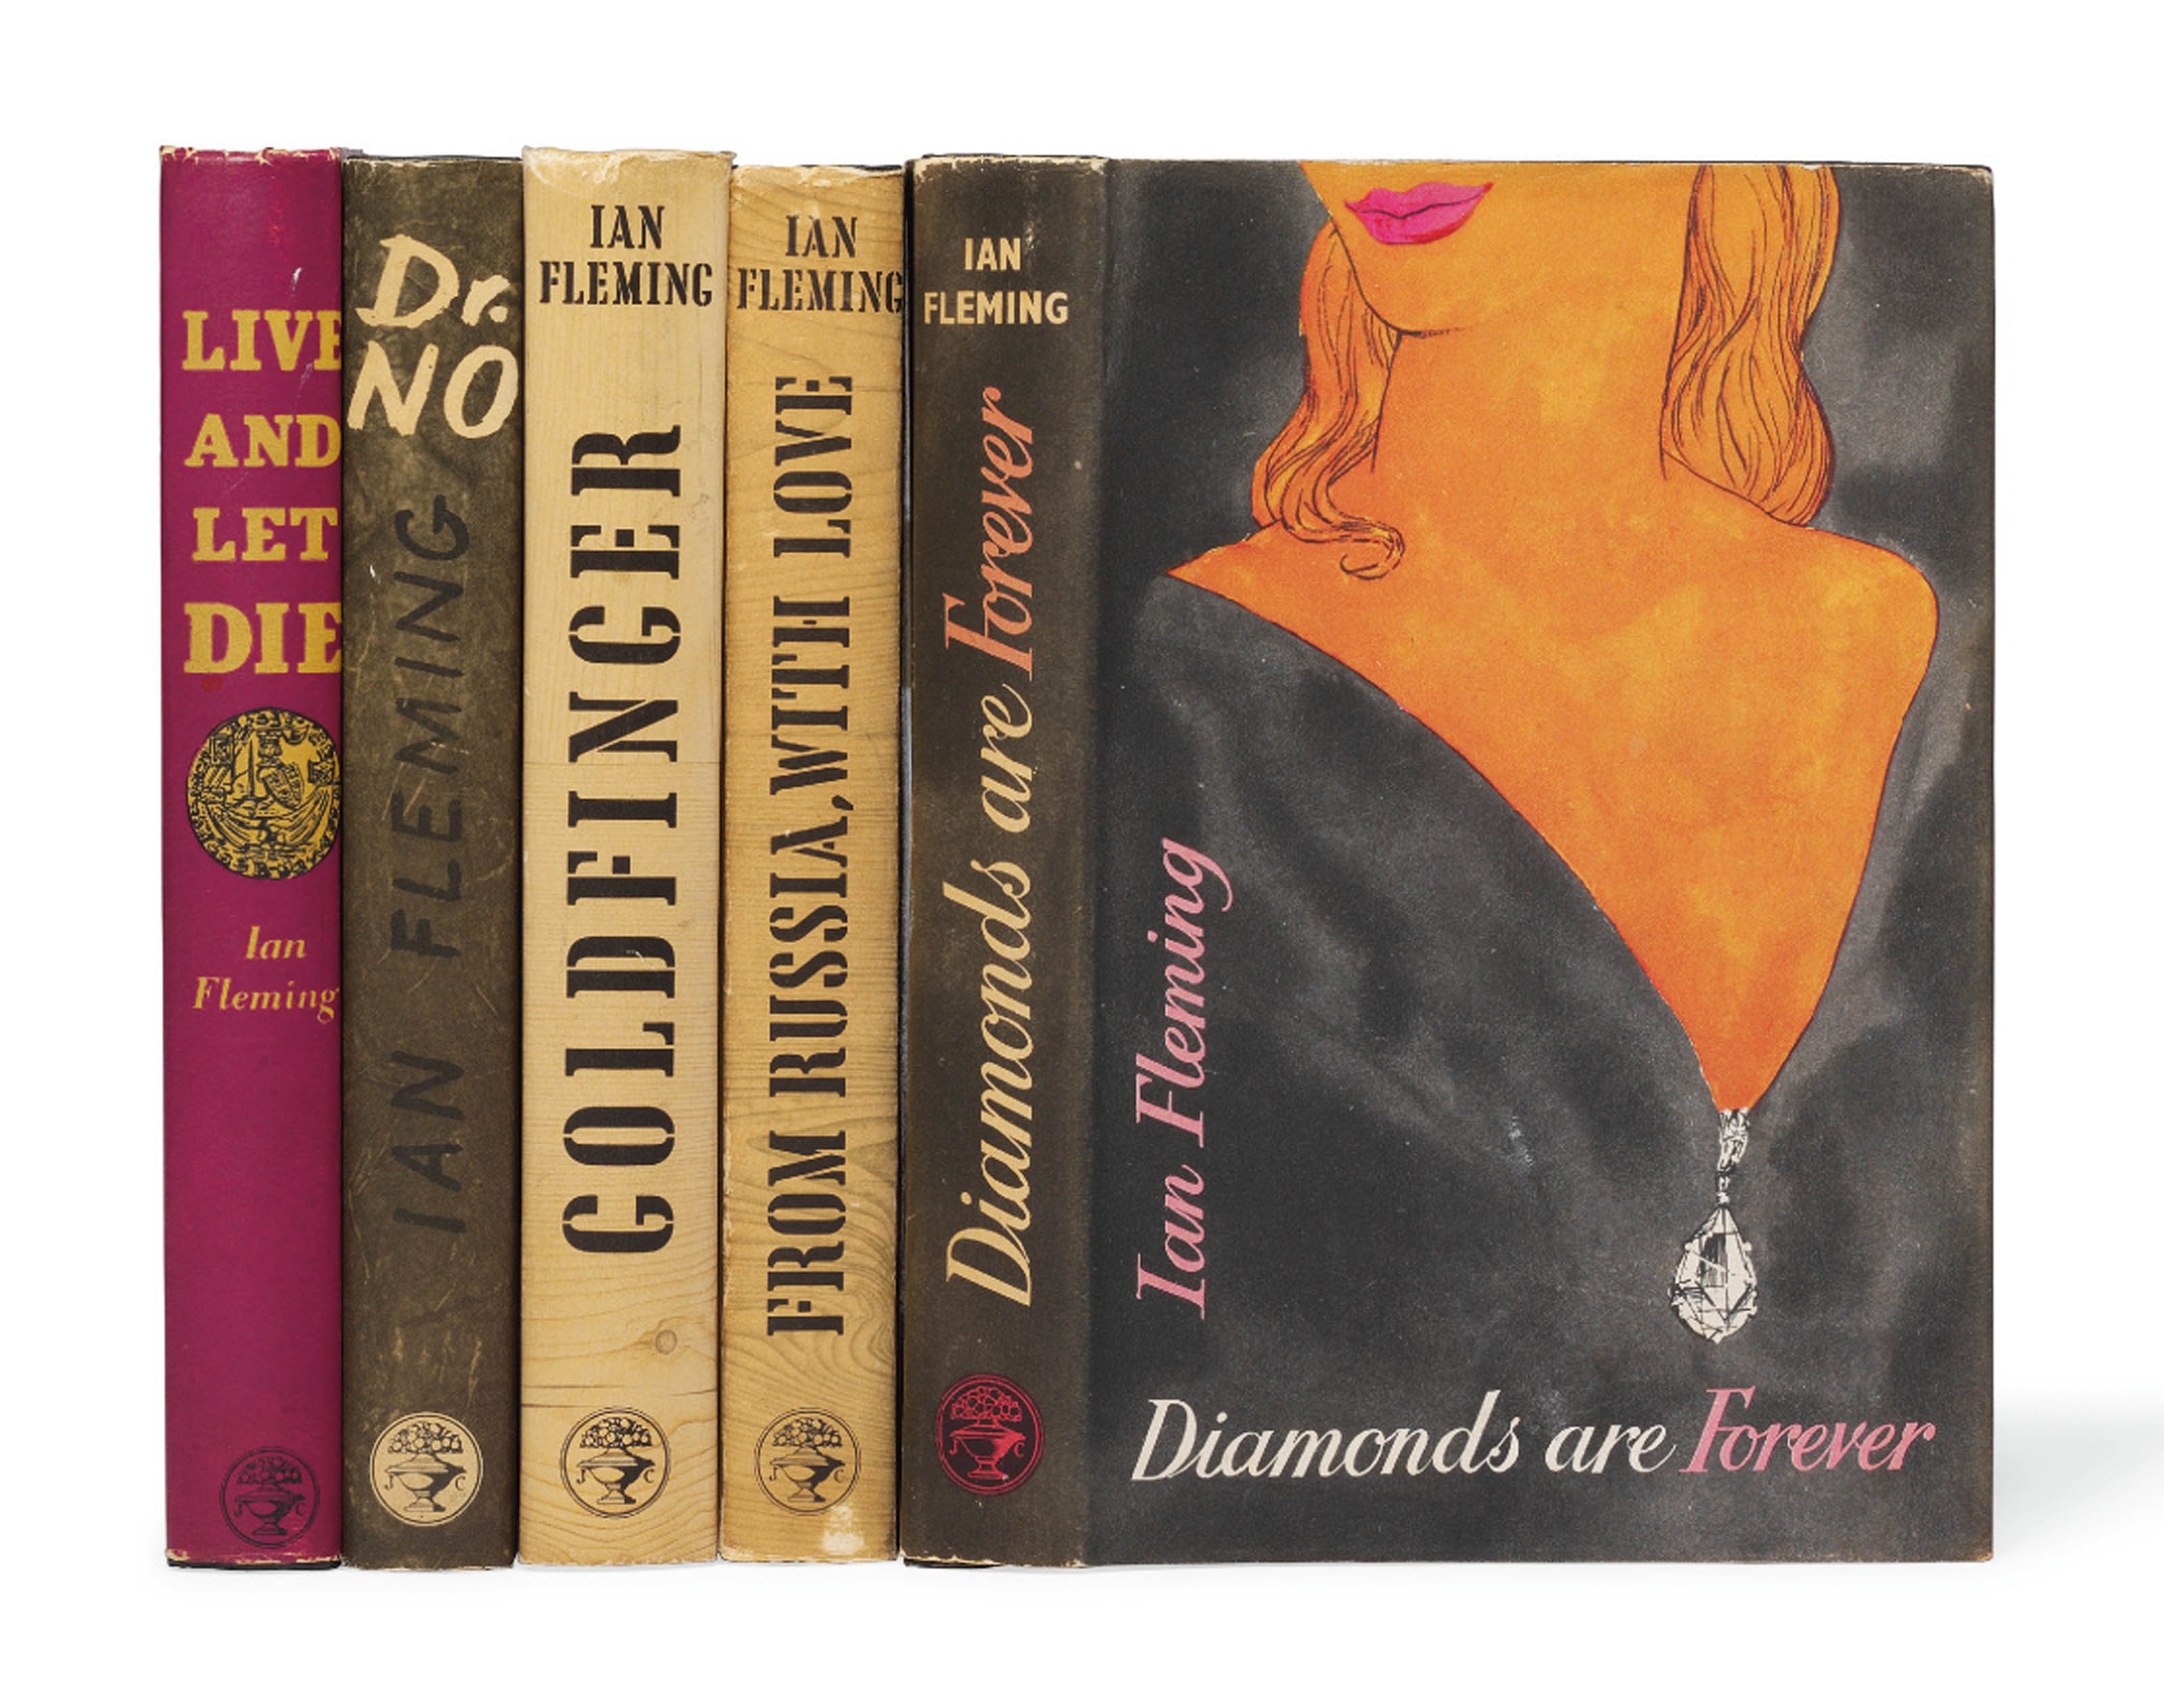 FLEMING, Ian (1908-64). Diamonds are Forever. London: Jonathan Cape, 1956. 8° (188 x 122mm). (Marginal staining to first 5 leaves and light marginal spotting to last 2.) Original black decorated cloth, title in silver on spine, original pictorial dust-jacket (a few stains to back cover, edges lightly spotted, extremities of dust-jacket lightly rubbed, light staining to front flap). Provenance: Foyles (bookseller's ticket).